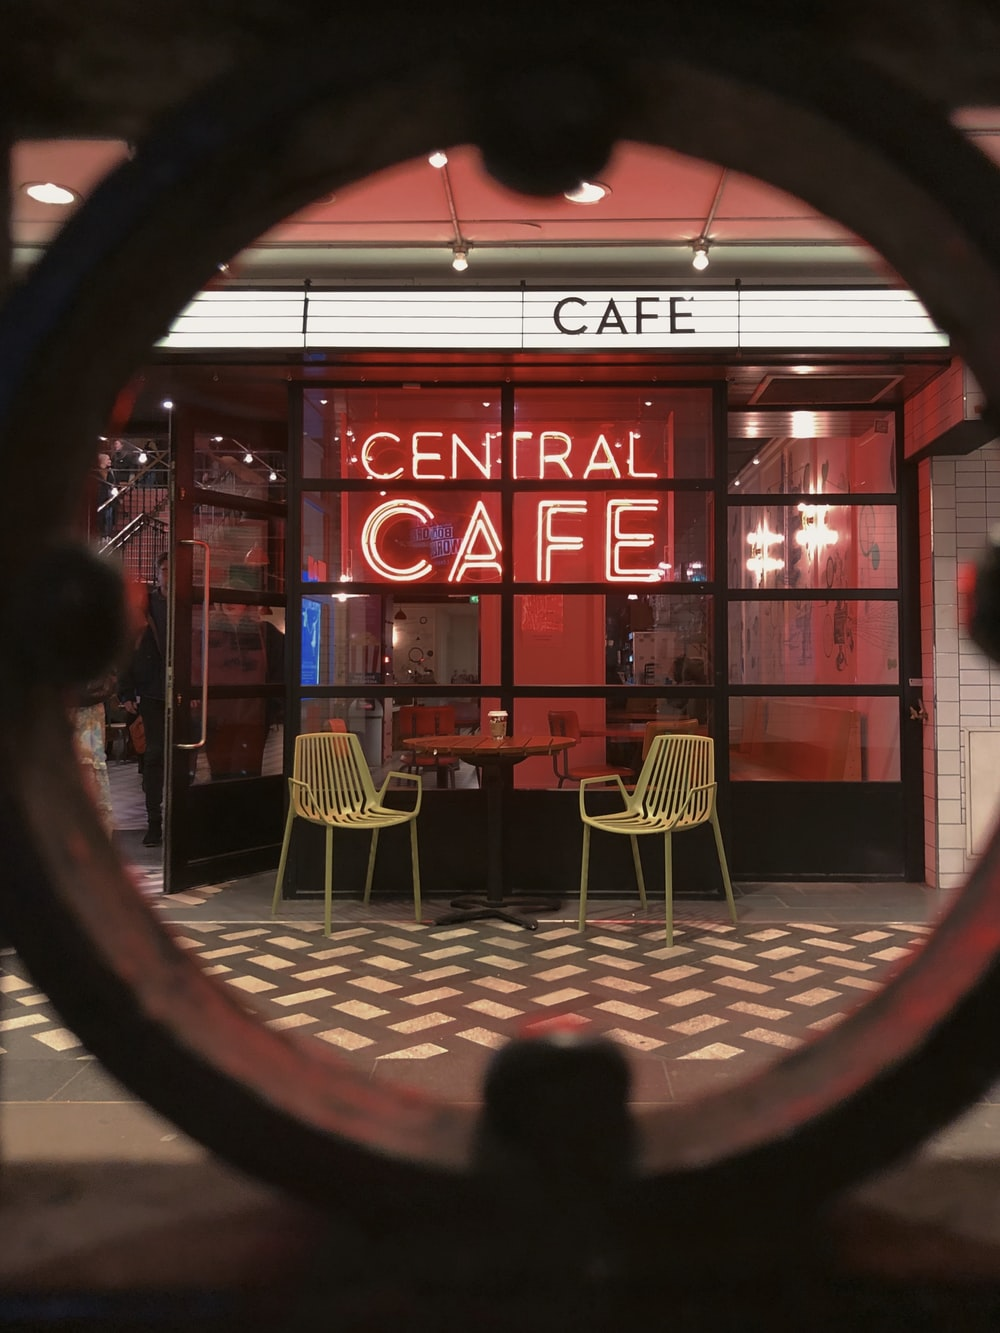 Central Cafe neon signage